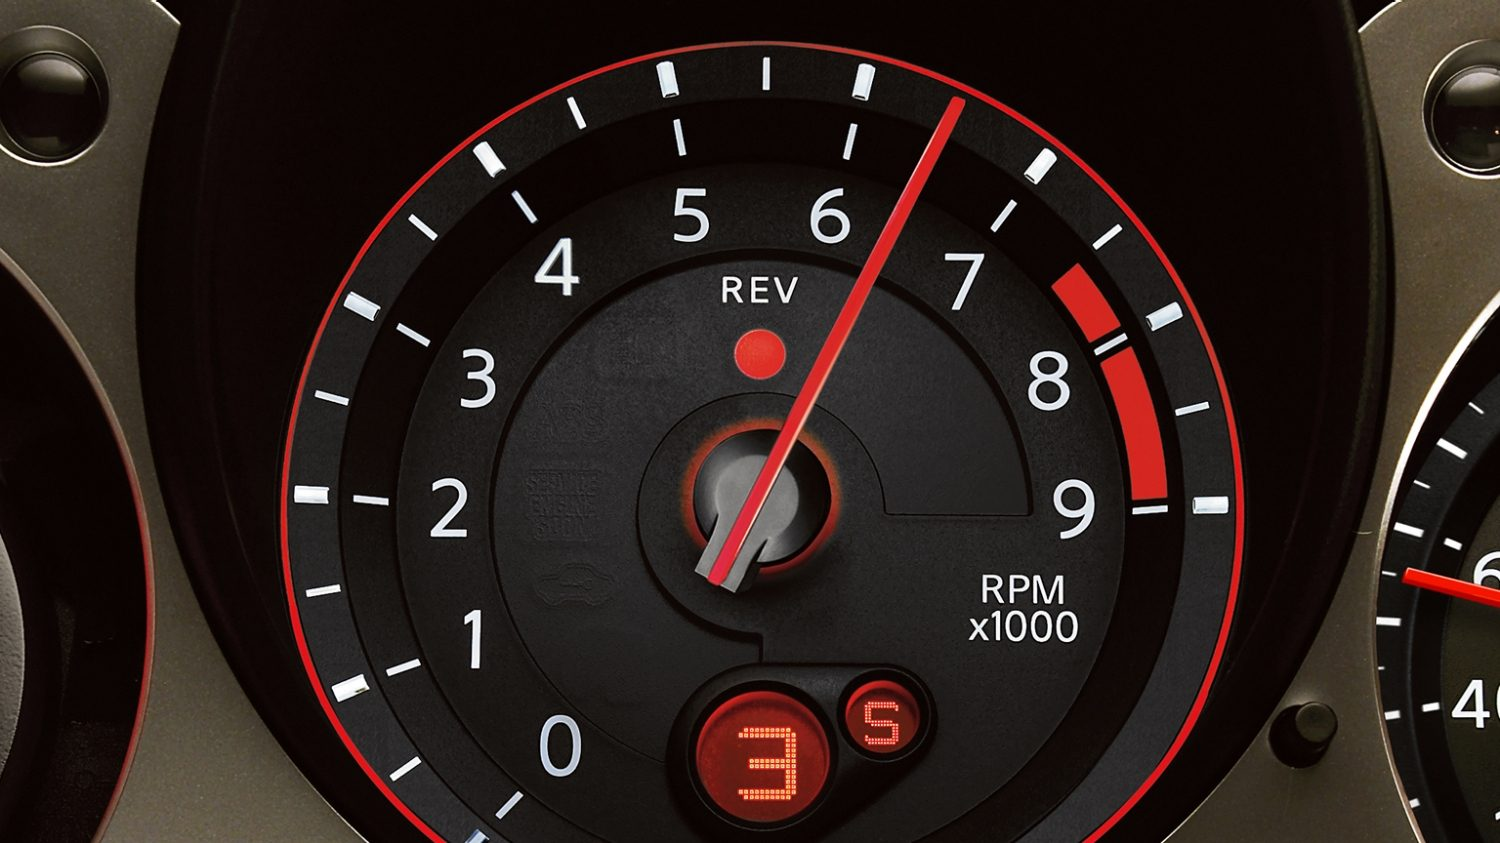 Nissan 370Z | Coupe | Synchro rev control display